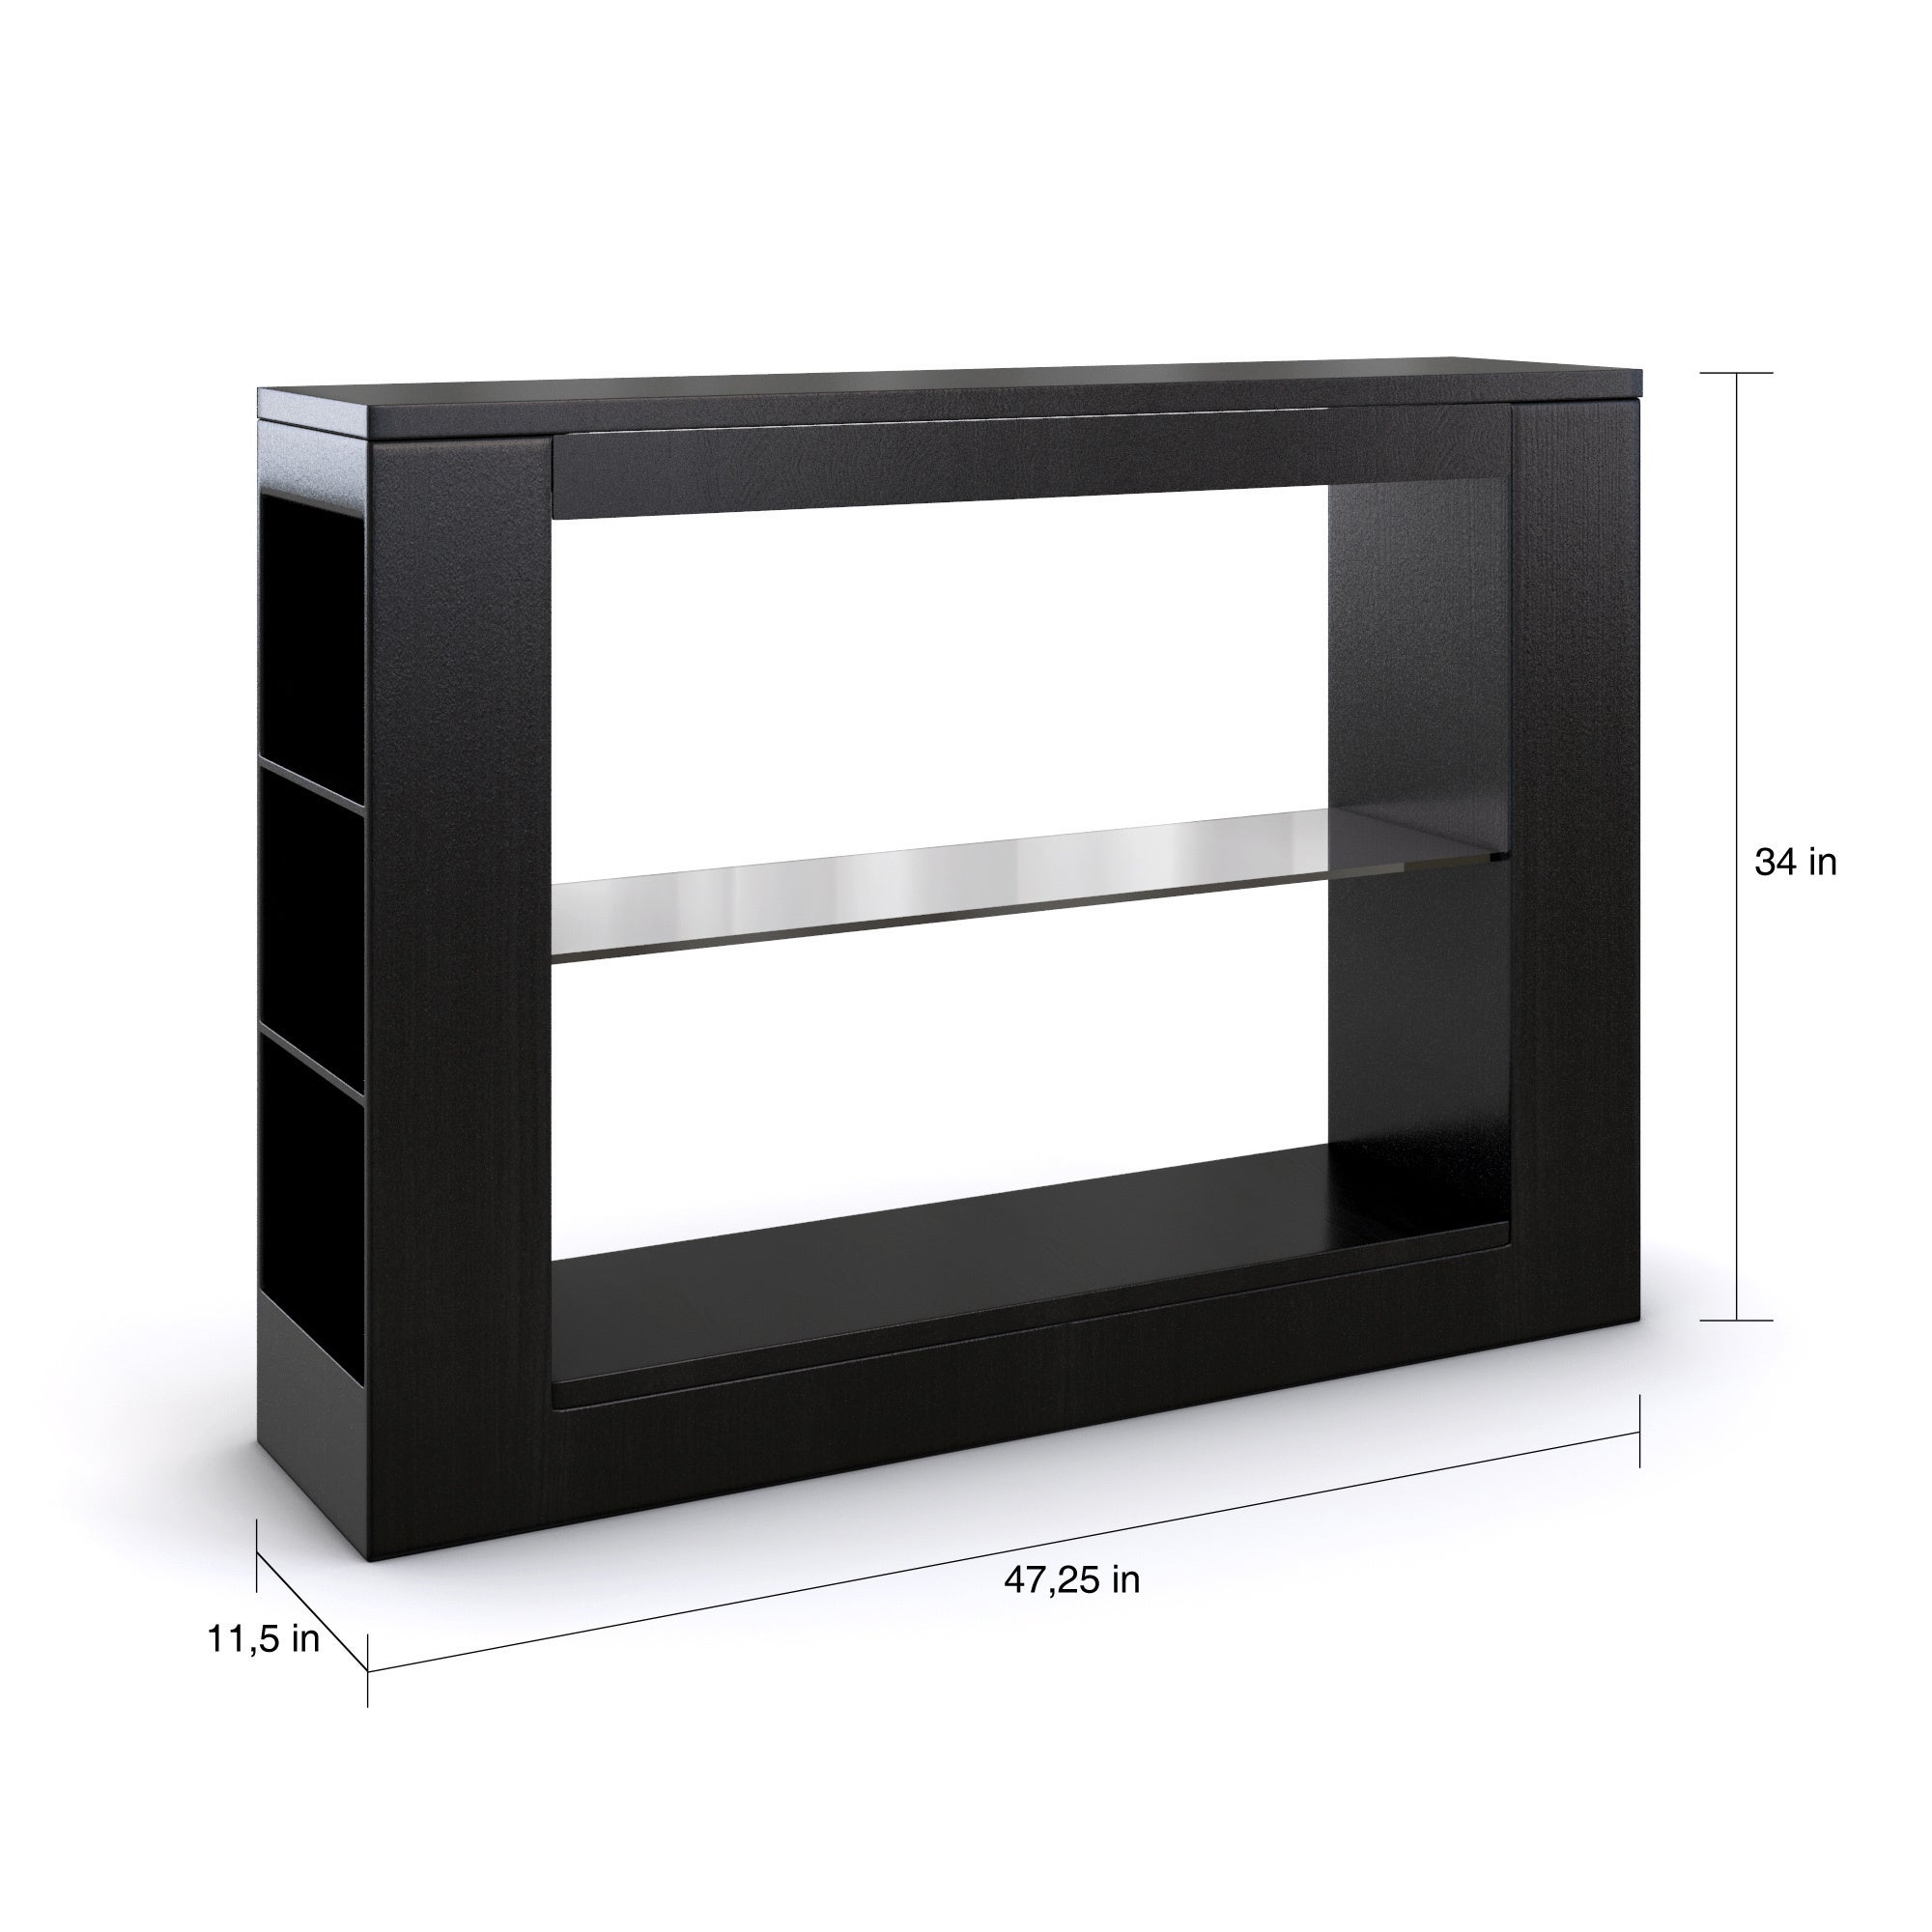 Porch & Den Brent Black Multi Storage Tempered Glass Dining Buffet Table Inside Contemporary Three Tier Glass Buffets With Black Metal Frame (View 22 of 30)